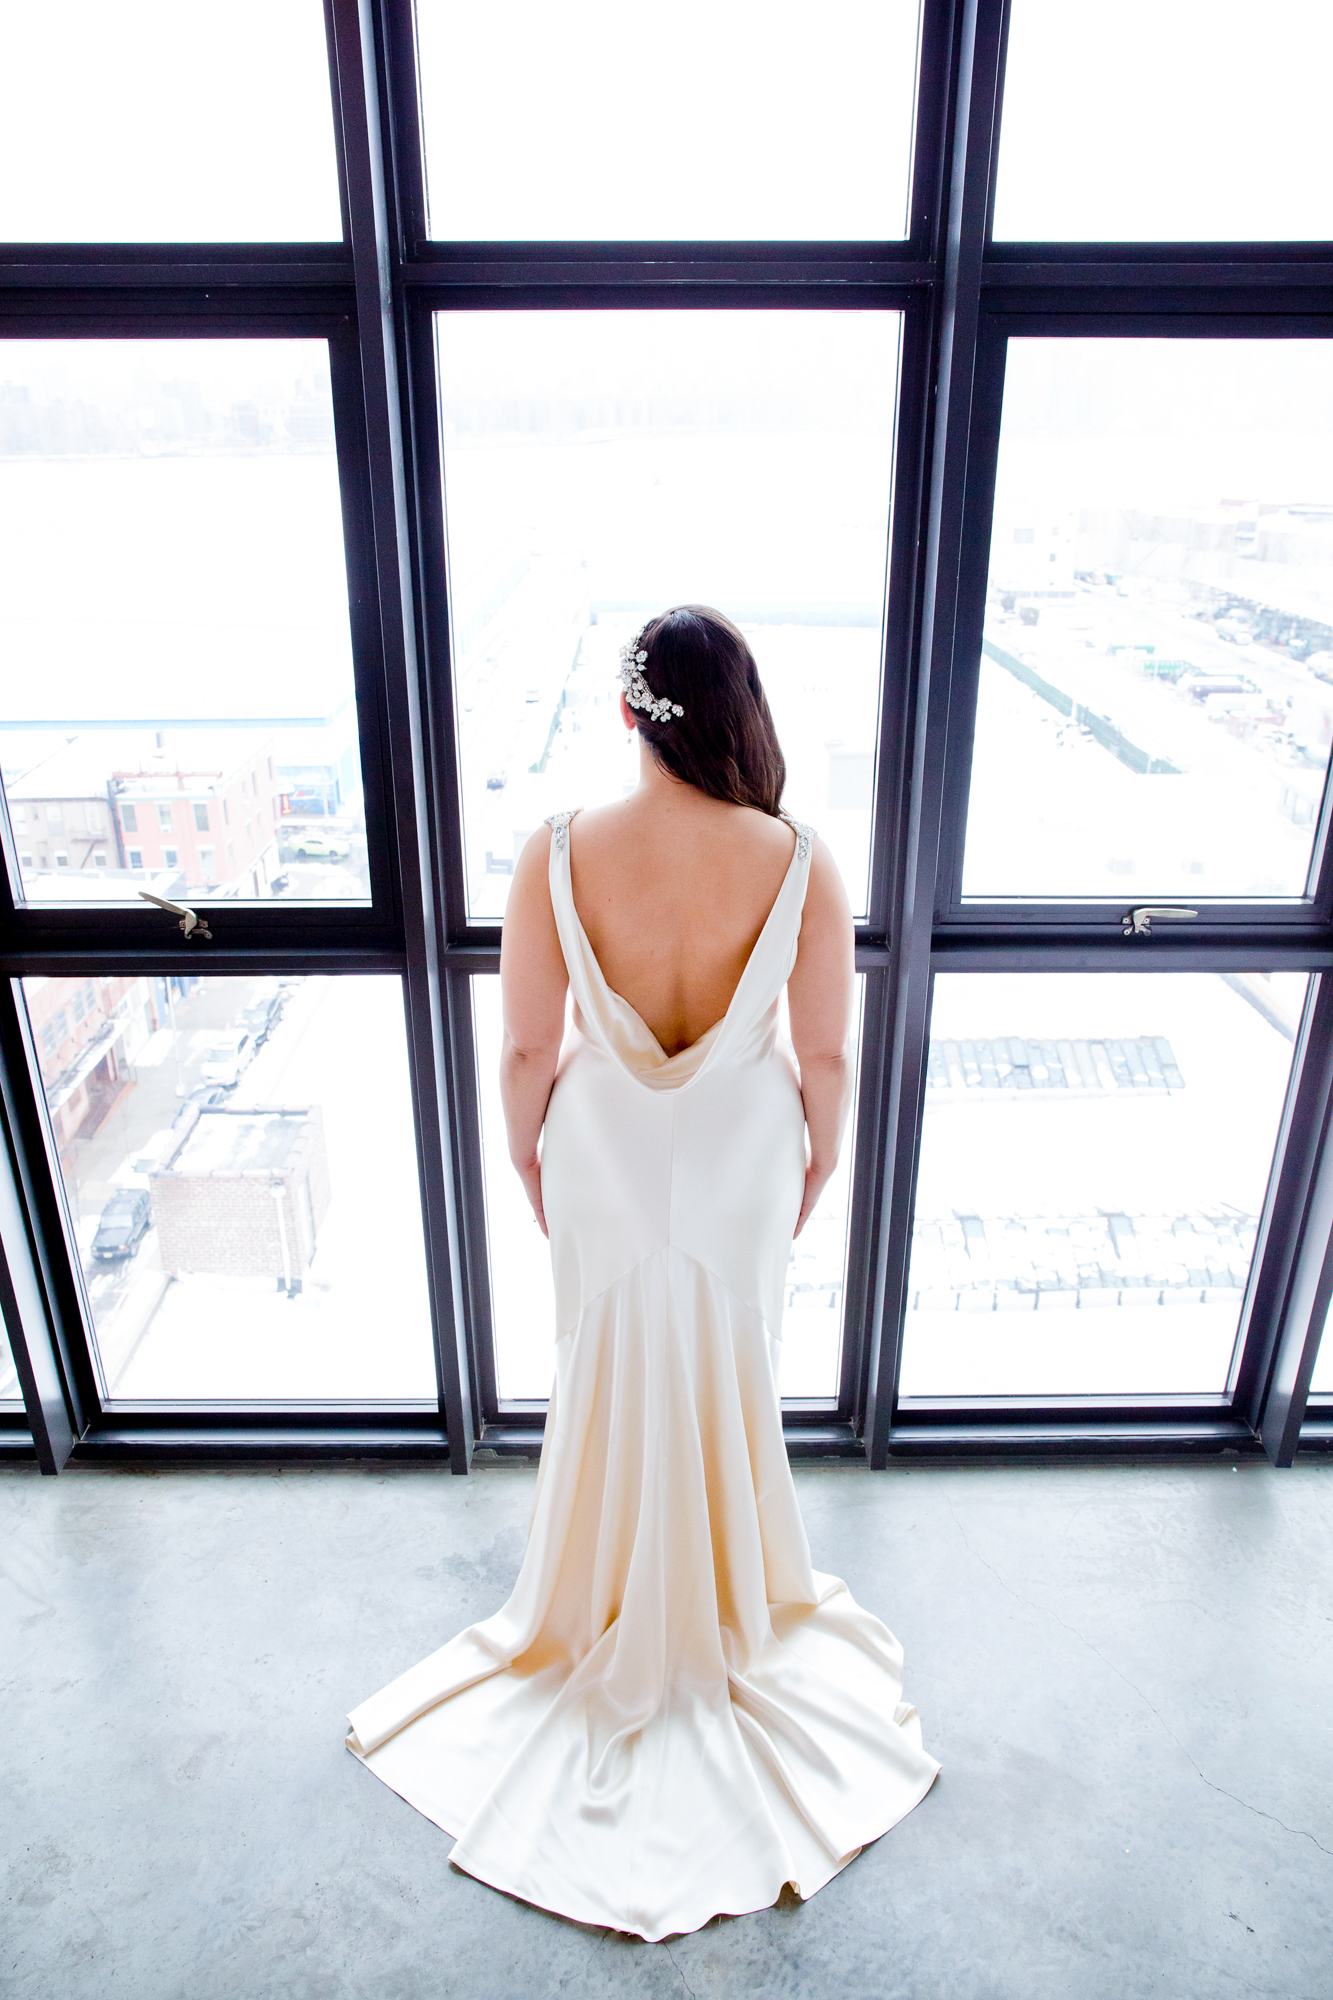 004_CarlyGaebe_SteadfastStudio_WeddingPhotography_NewYorkCity_Brooklyn_WytheHotel_Retro_Bride.jpg